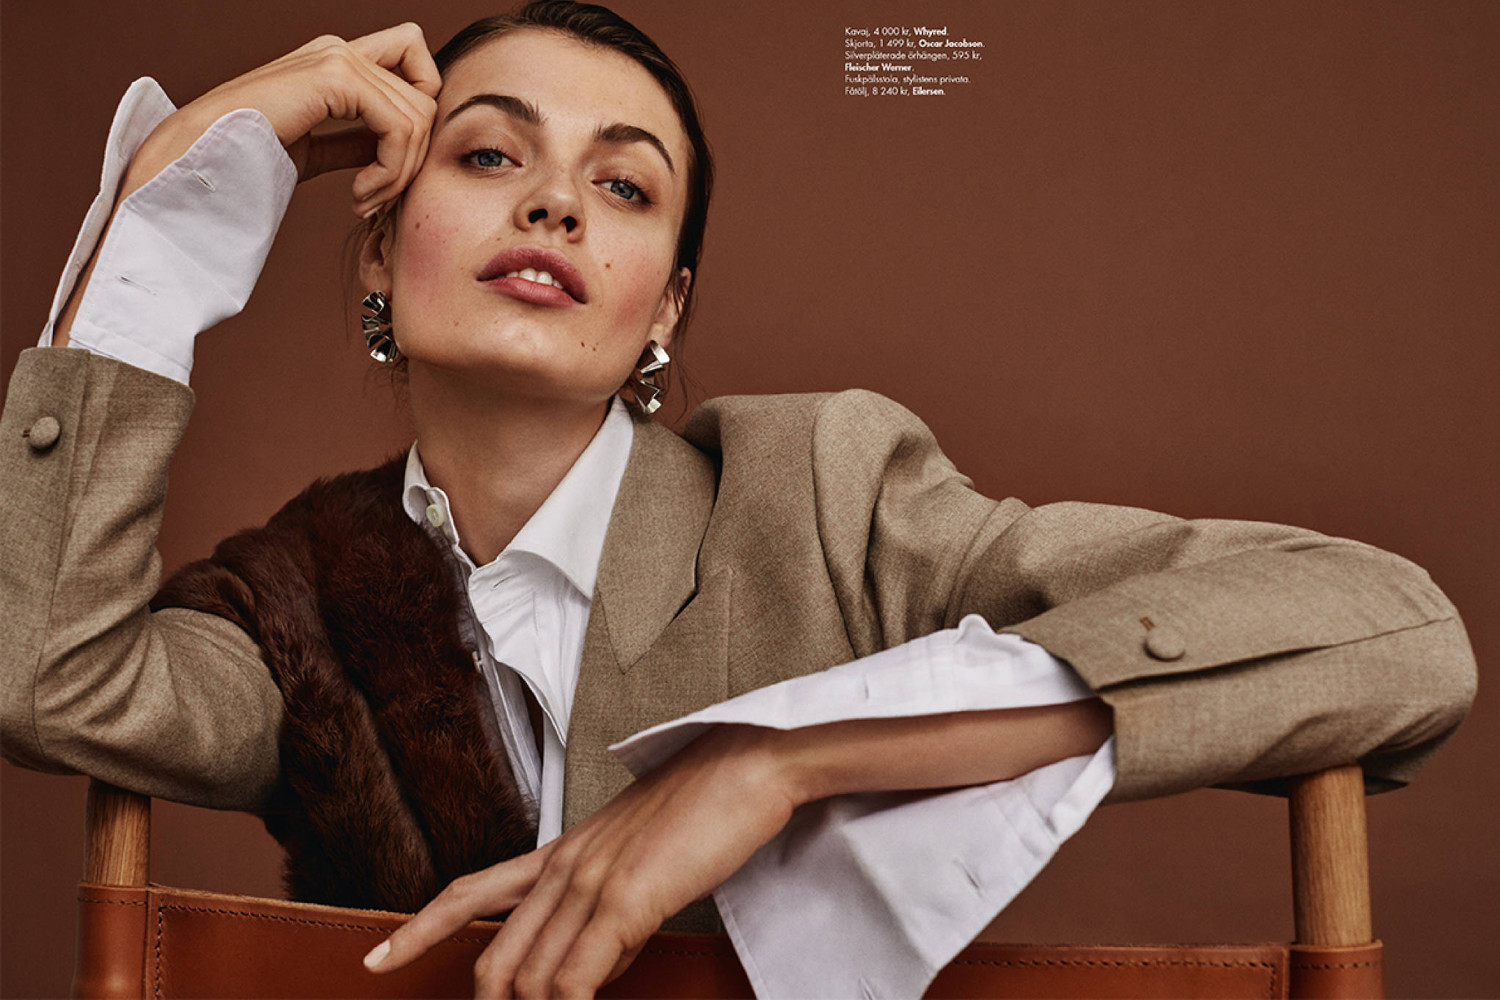 RENATA K FOR PLAZA MAGAZINE